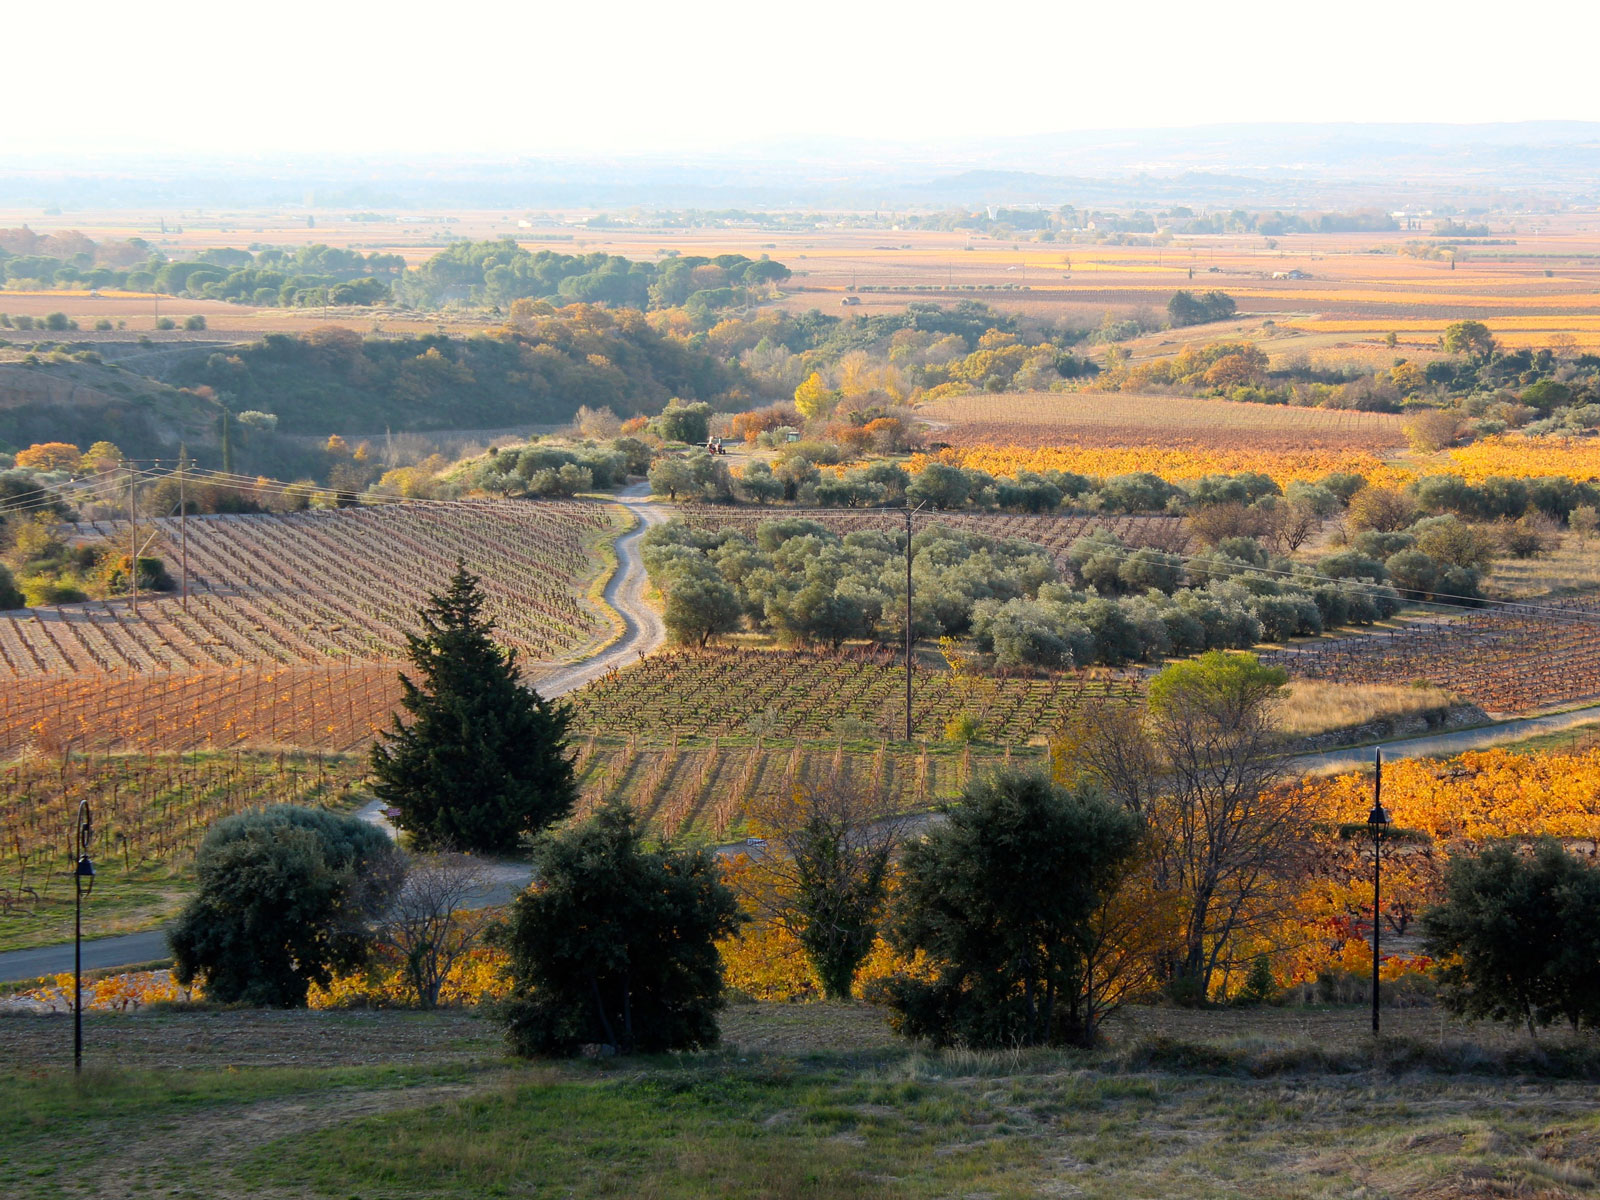 Languedoc Travel Guide: This Southern French Region Is a Must-Visit Wine and Seafood Destination